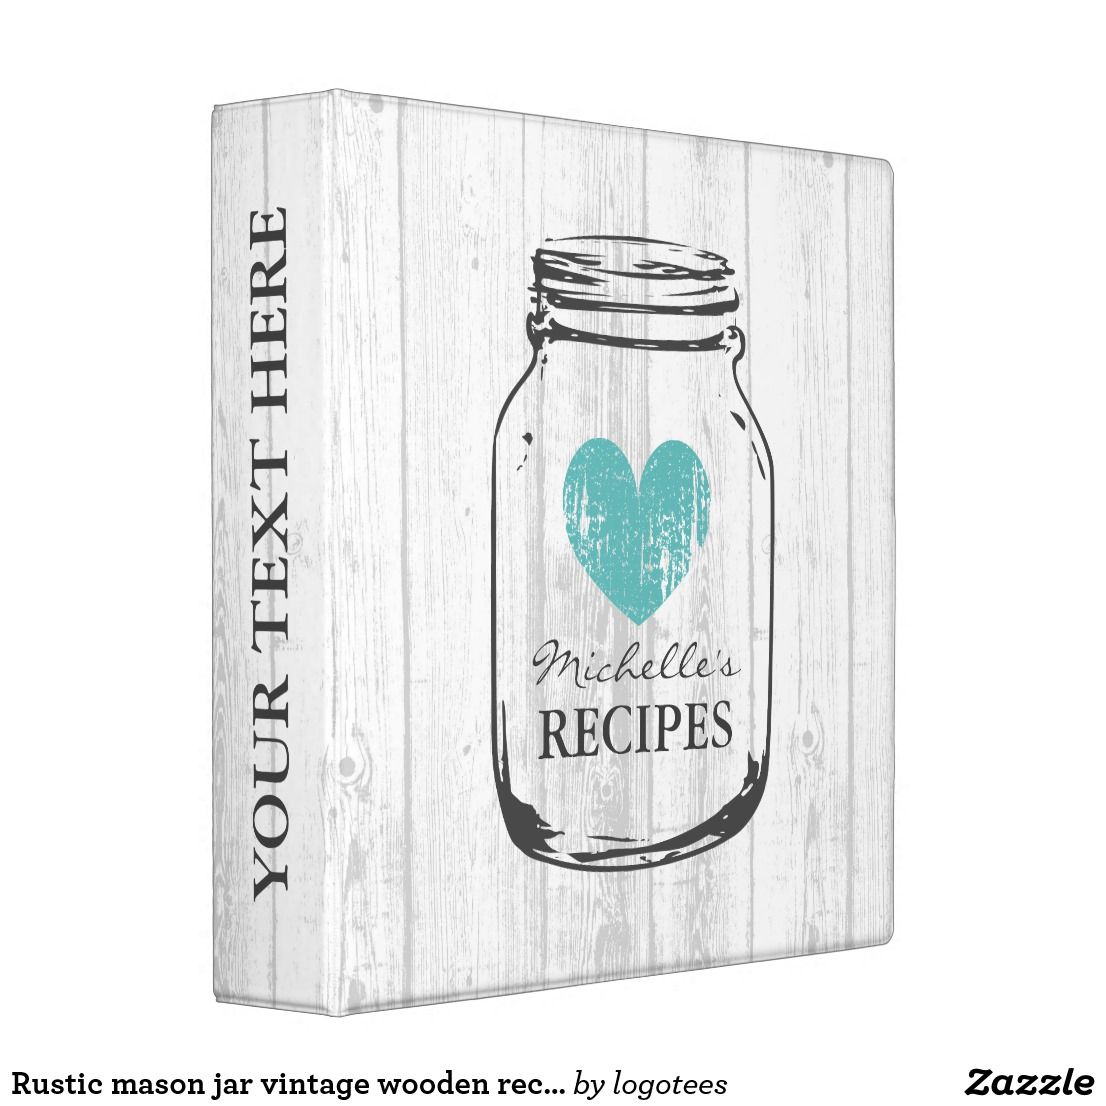 Rustic mason jar vintage wooden recipe binder book Personalized white oak wood grain line rustic mason jar kitchen recipe binder book. Custom kitchen cookbook with vintage turquoise blue faded heart and personalizable name. Cute personalized baking / cooking gift idea for women; ie mom, mother, aunt, wife, sister, daughter, grandma, bride, bridesmaids, friend, chef etc. Country chic design with distressed love symbol. Elegant typography for custom name or monogram. Cute food canning…